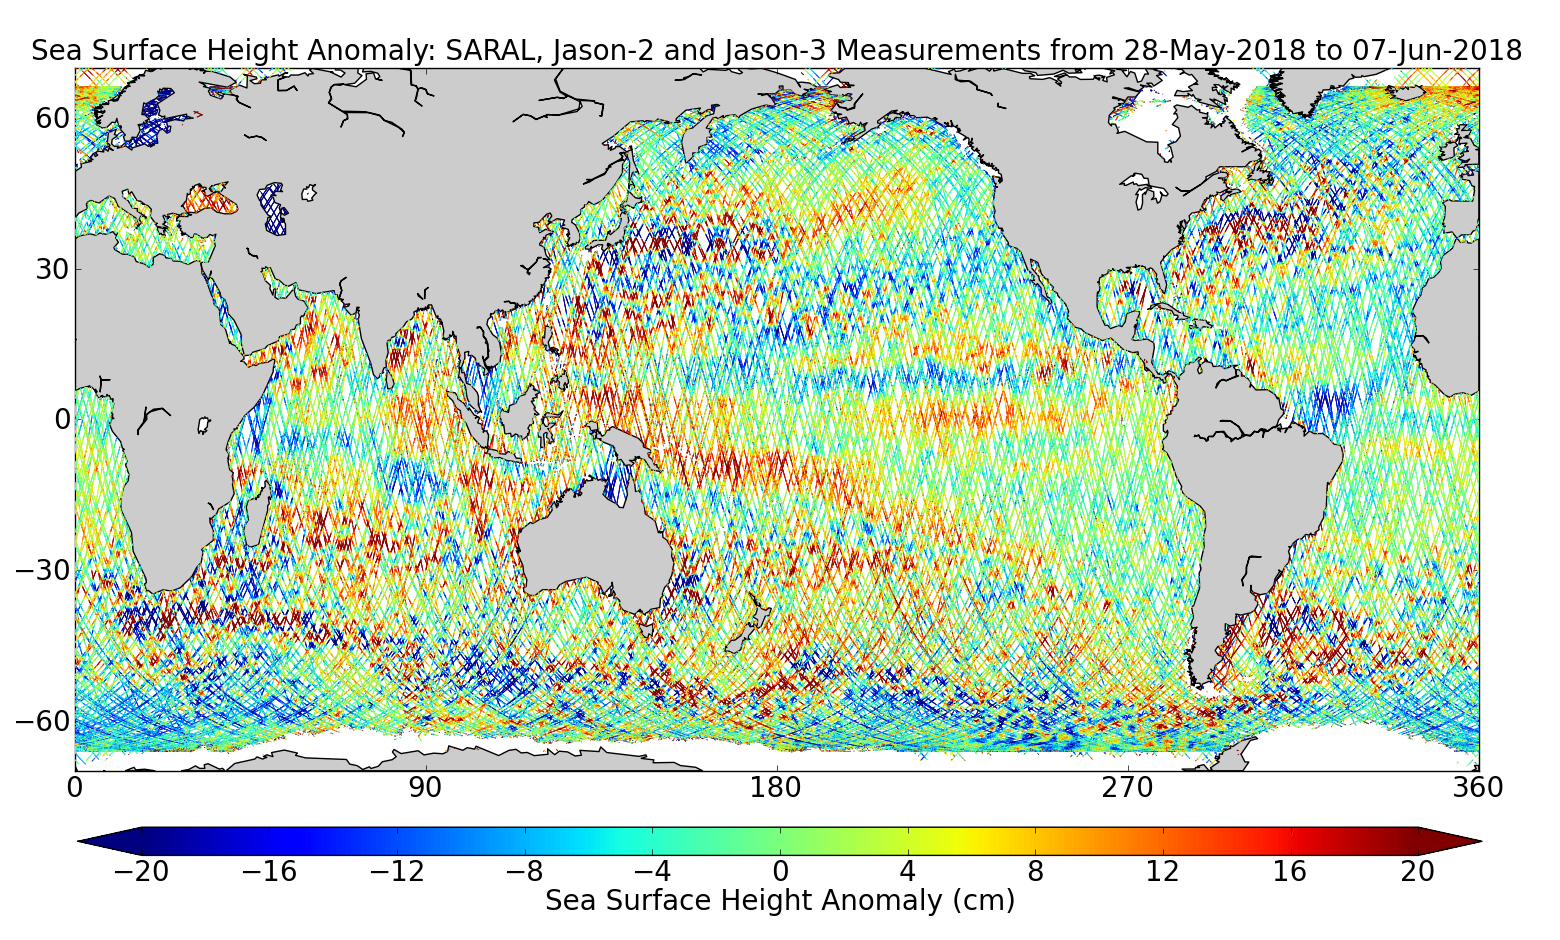 Sea Surface Height Anomaly: SARAL, Jason-2 and Jason-3 Measurements from 28-May-2018 to 07-Jun-2018